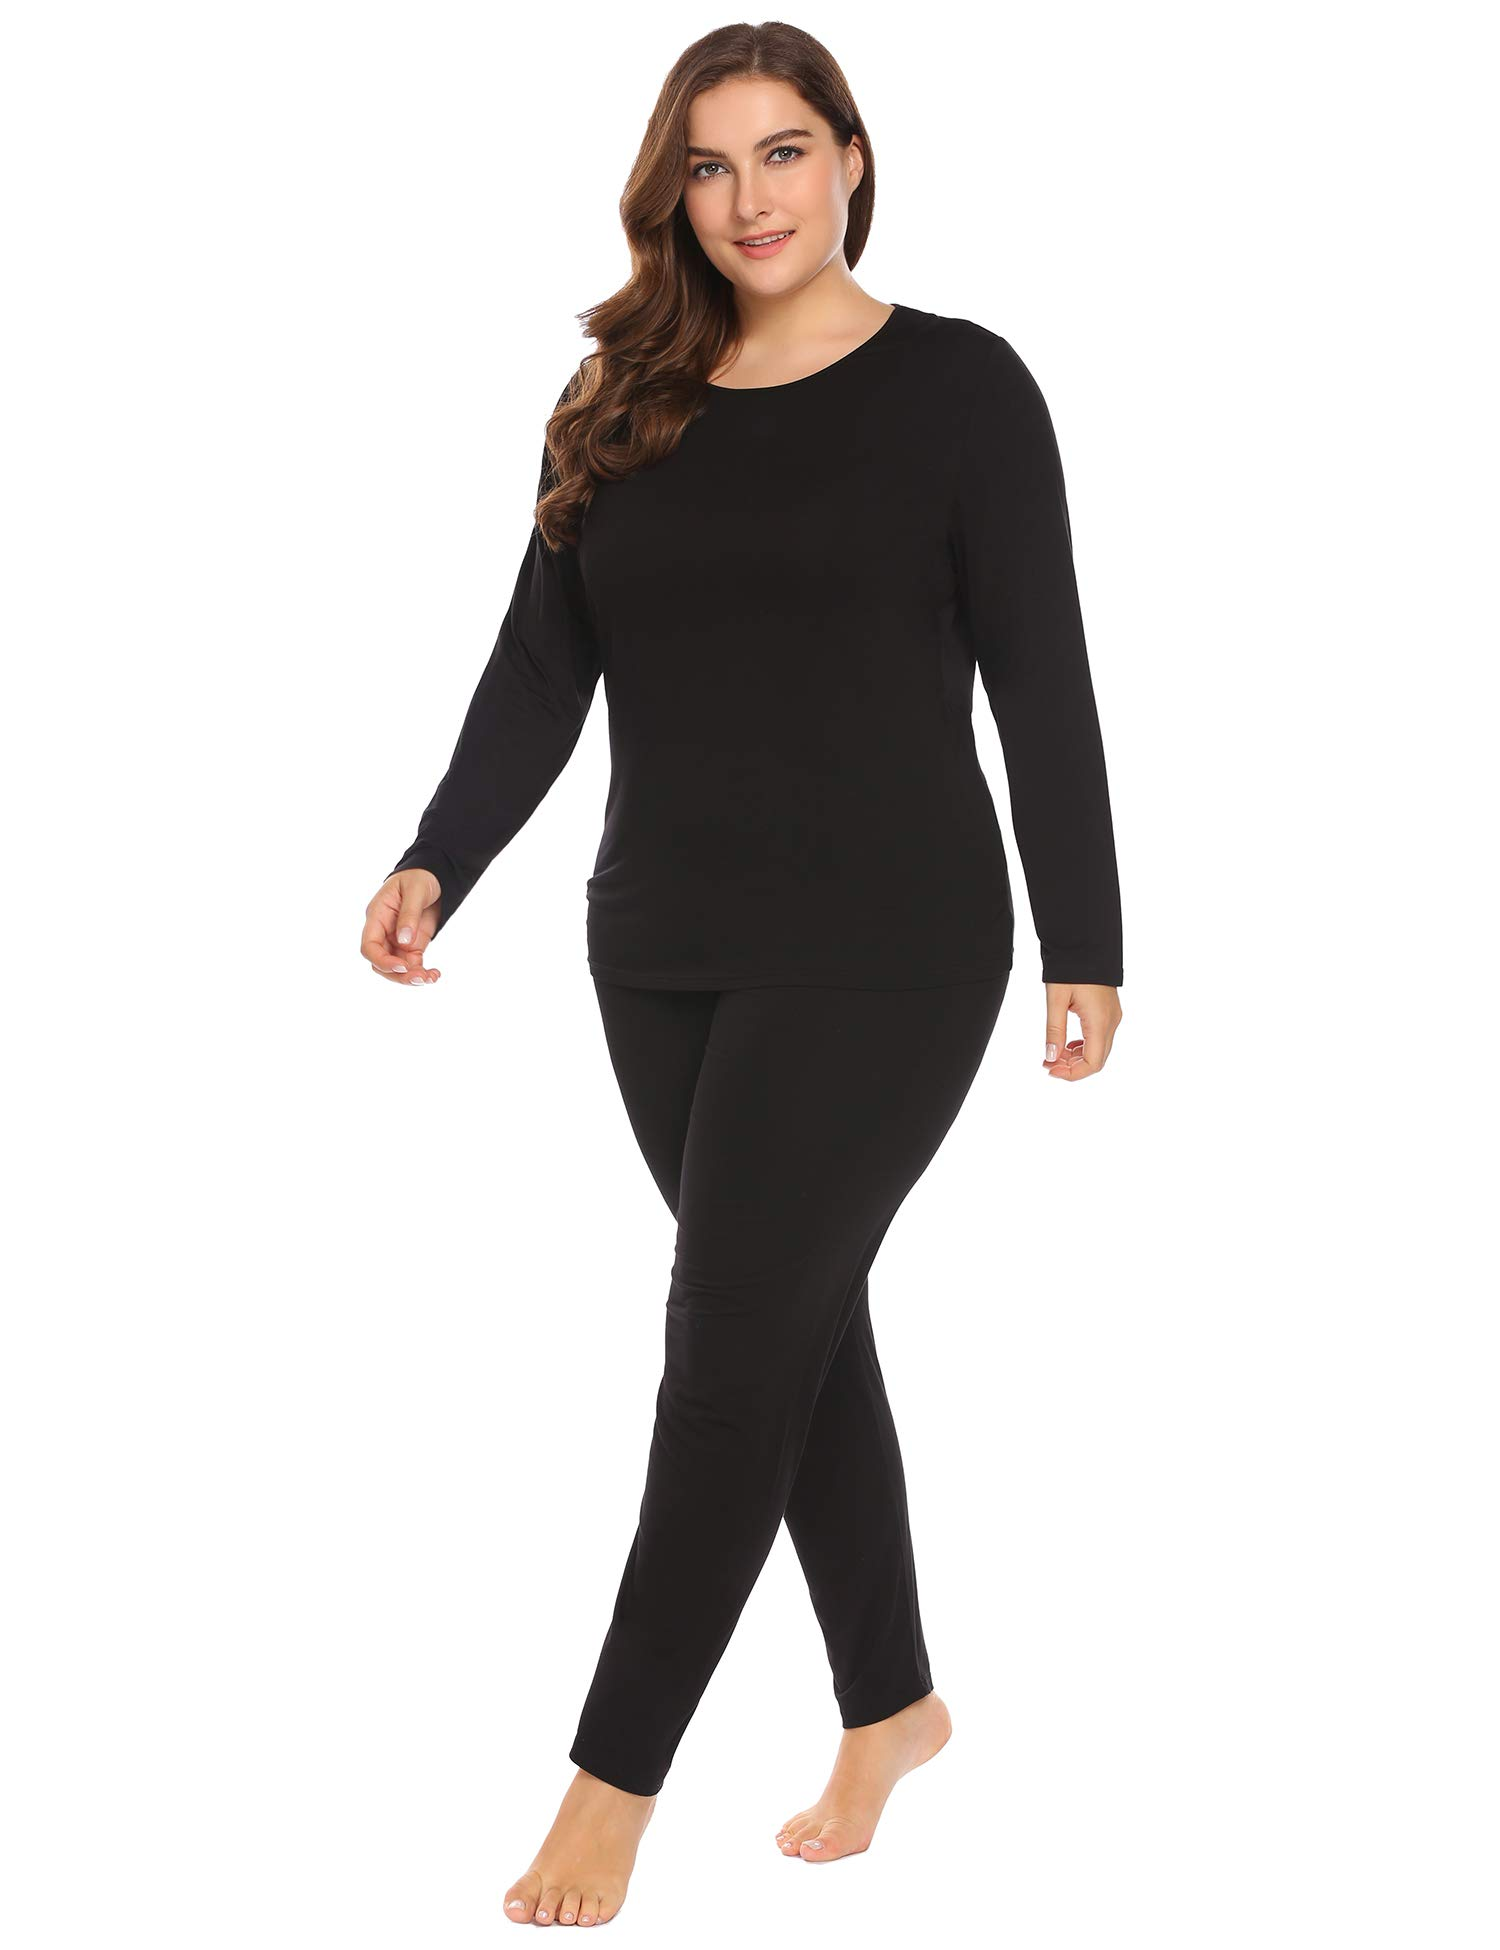 Women's Plus Size Thermal Long Johns Sets 2 Pcs Underwear Top & Bottom Pajama XL-15XL